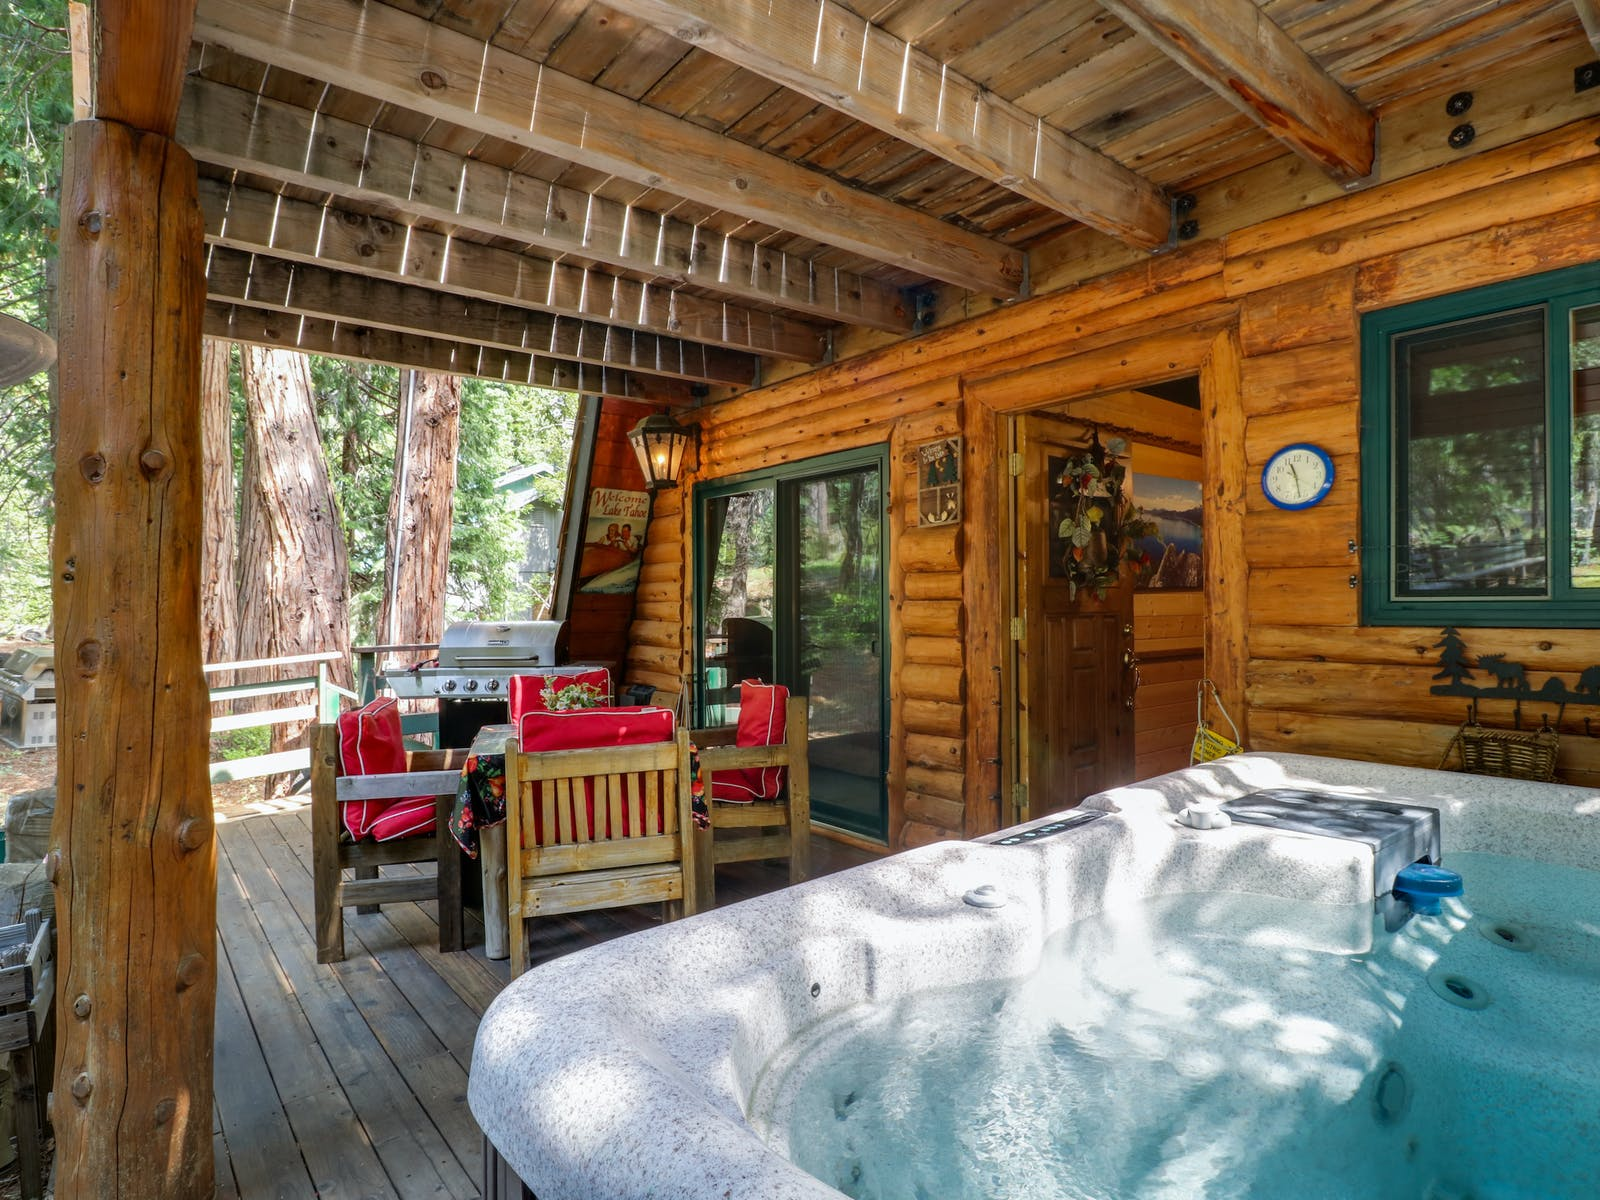 Secluded cabin rental hot tub and porch in California